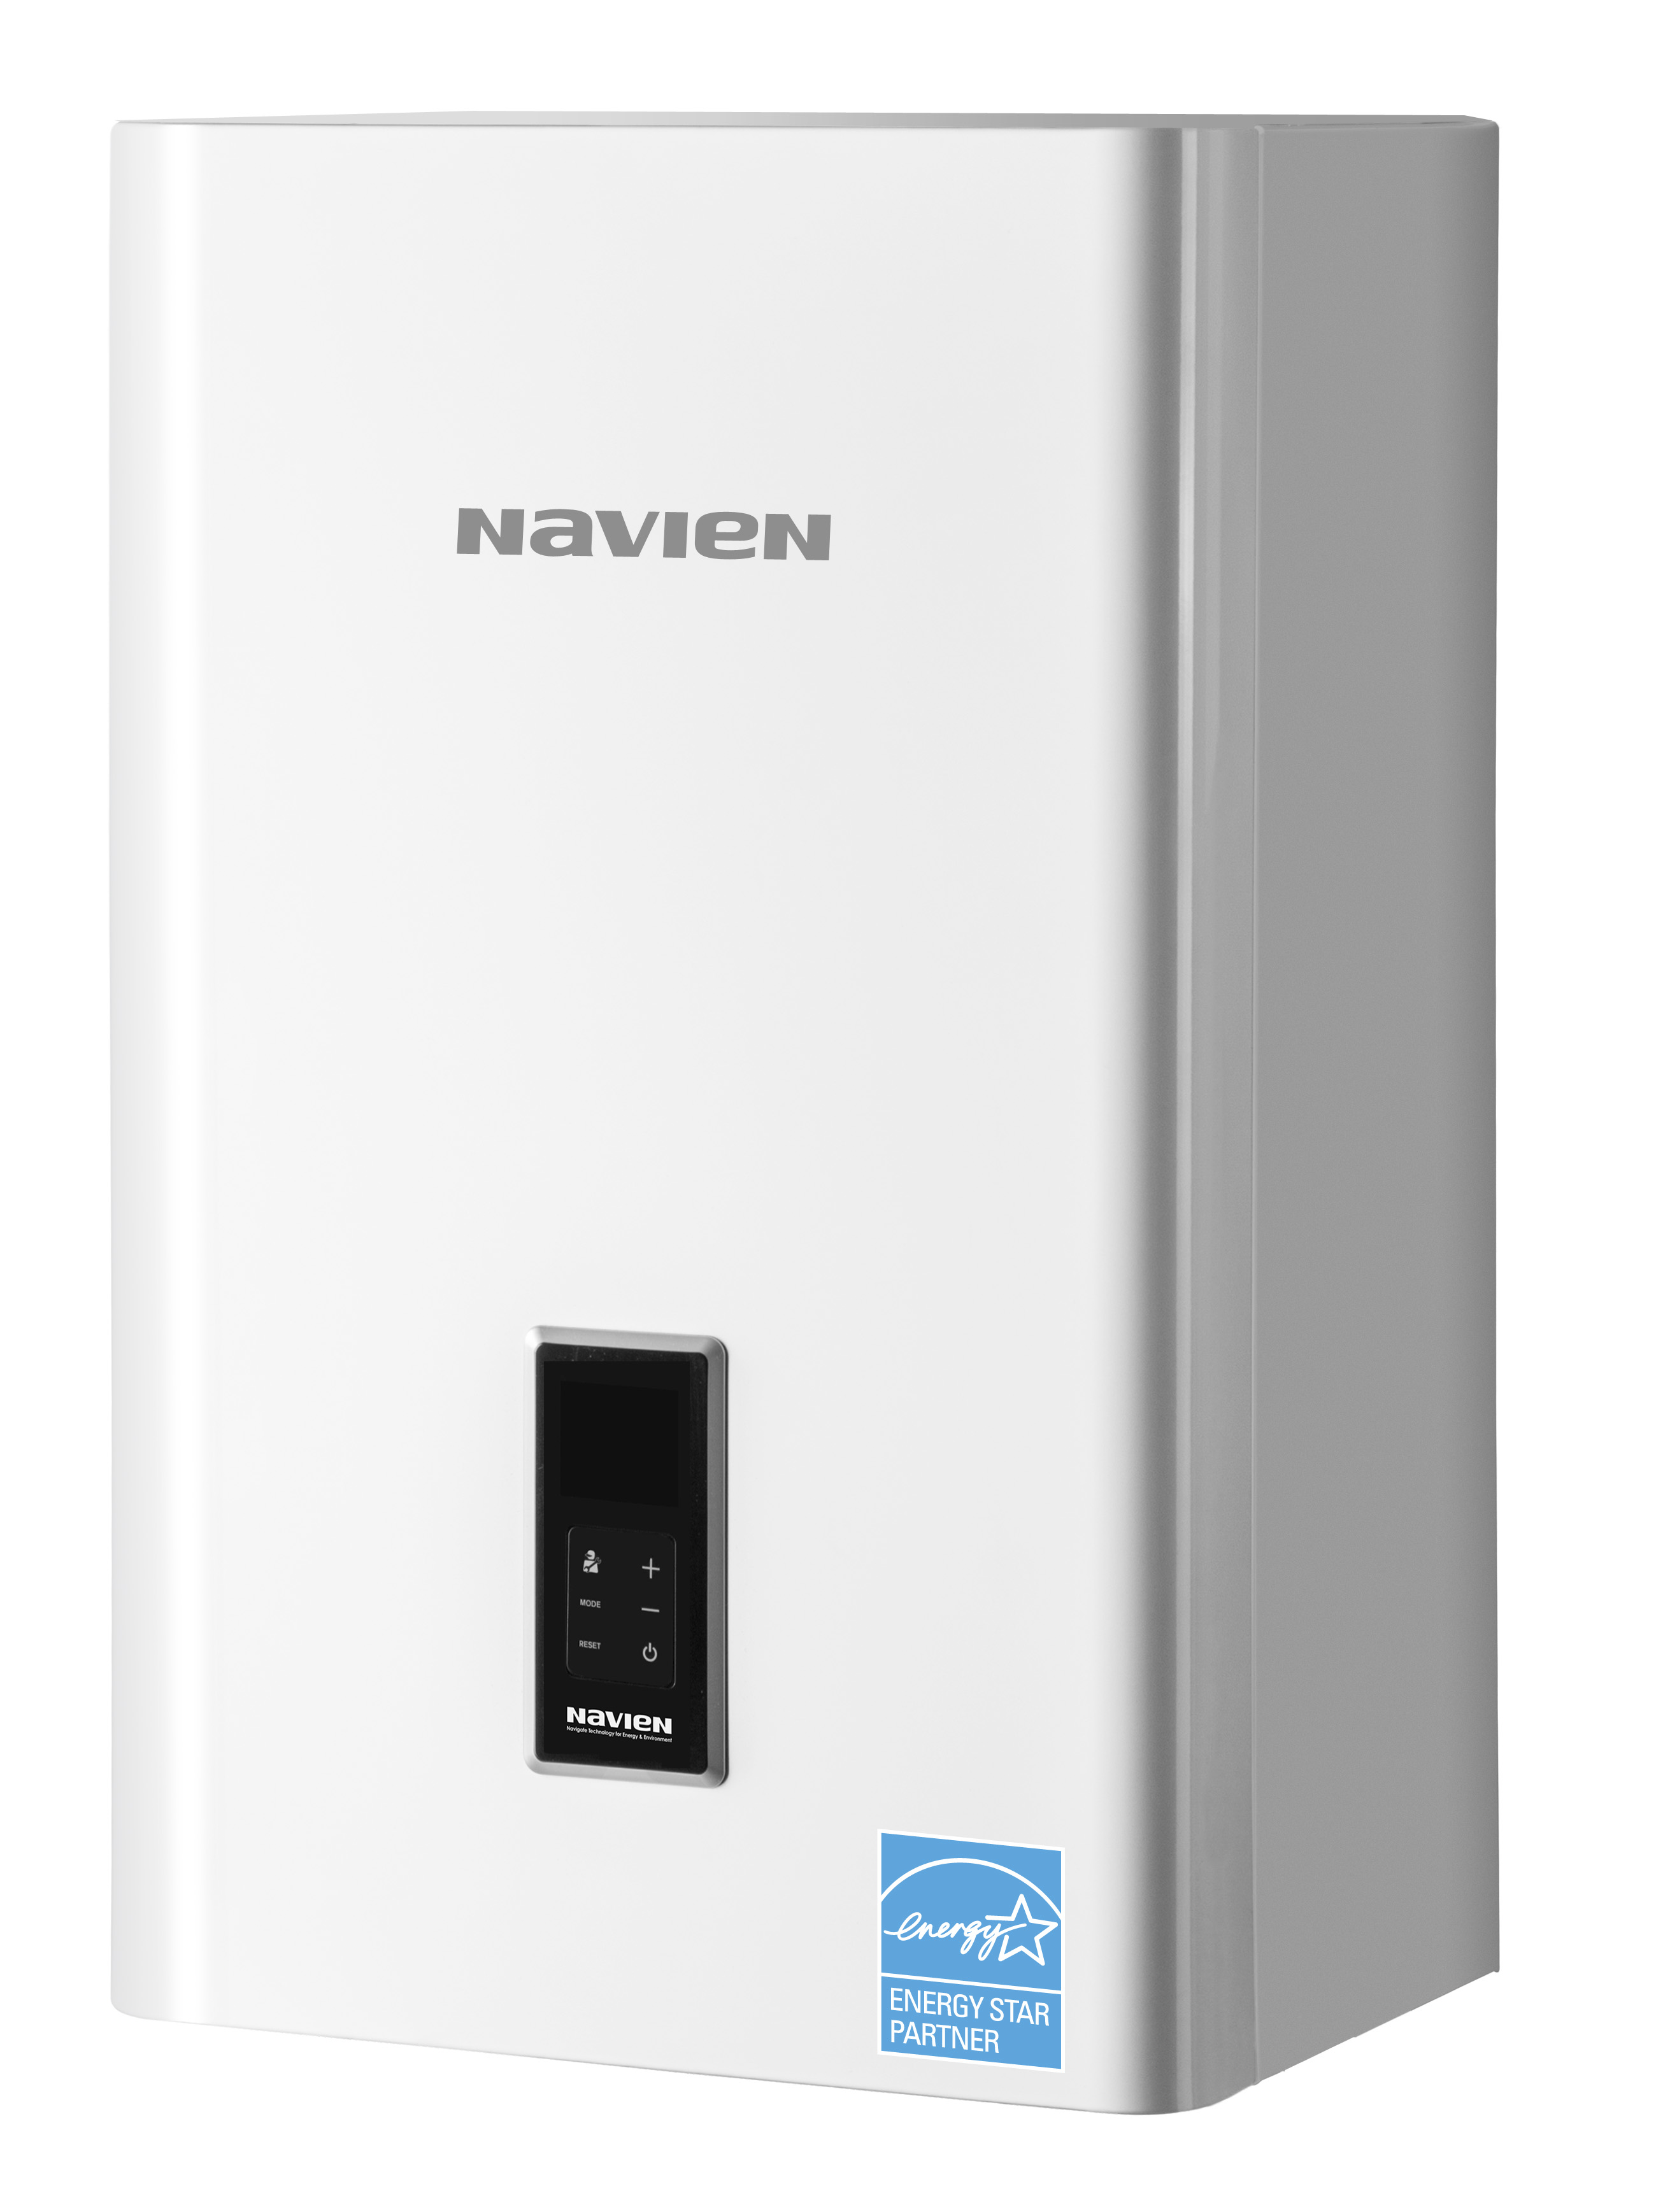 Tankless Water Heater from Navien